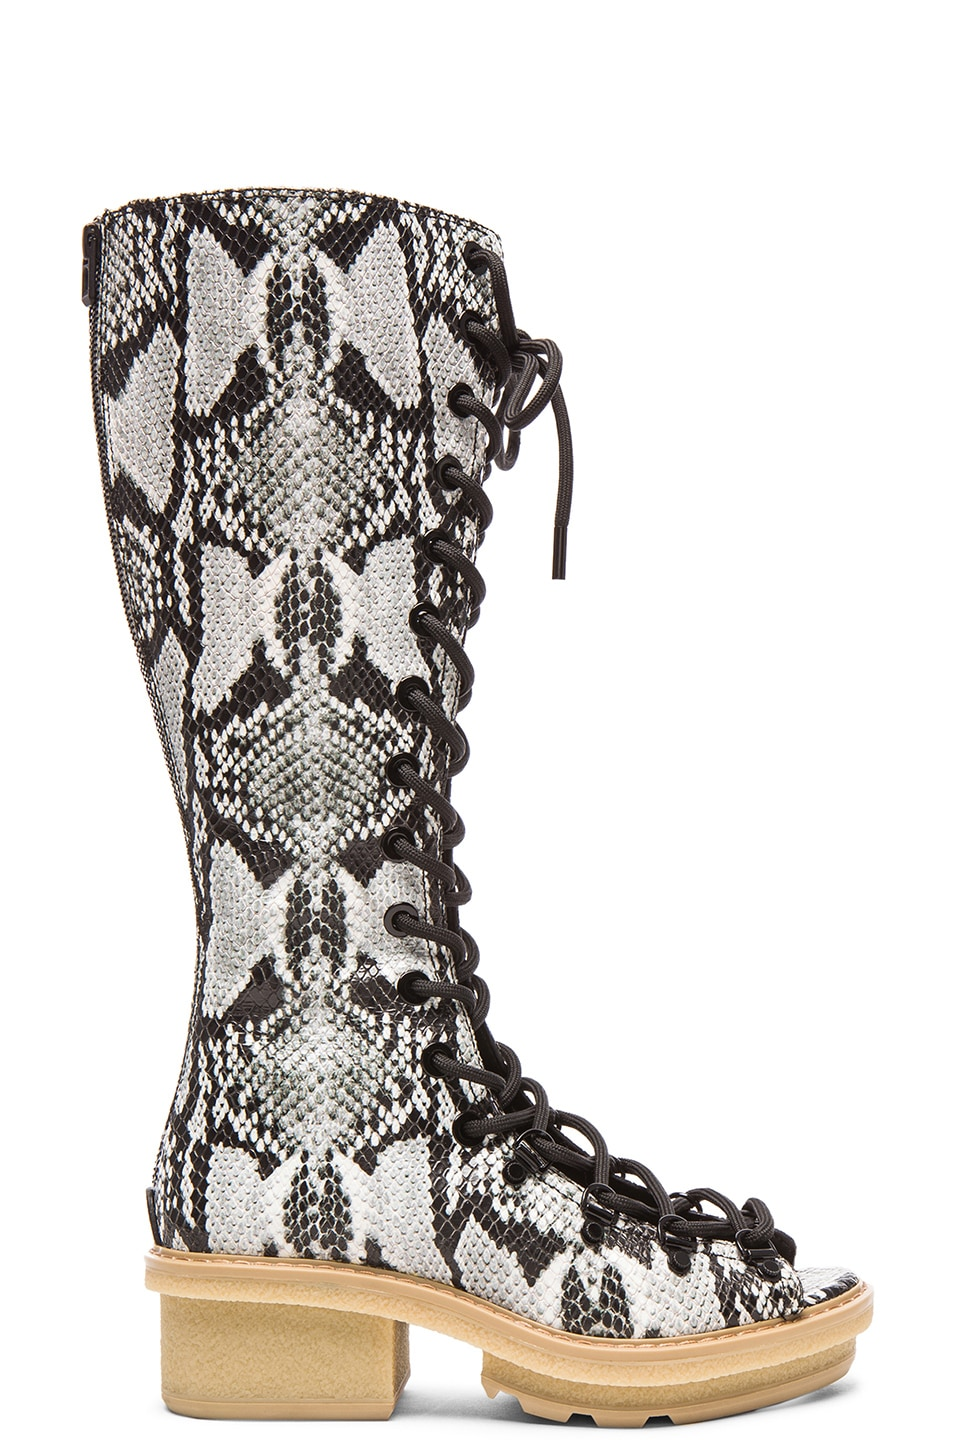 Image 1 of 3.1 phillip lim Mallory Python Print Leather Tall Sandal Boots in Off White